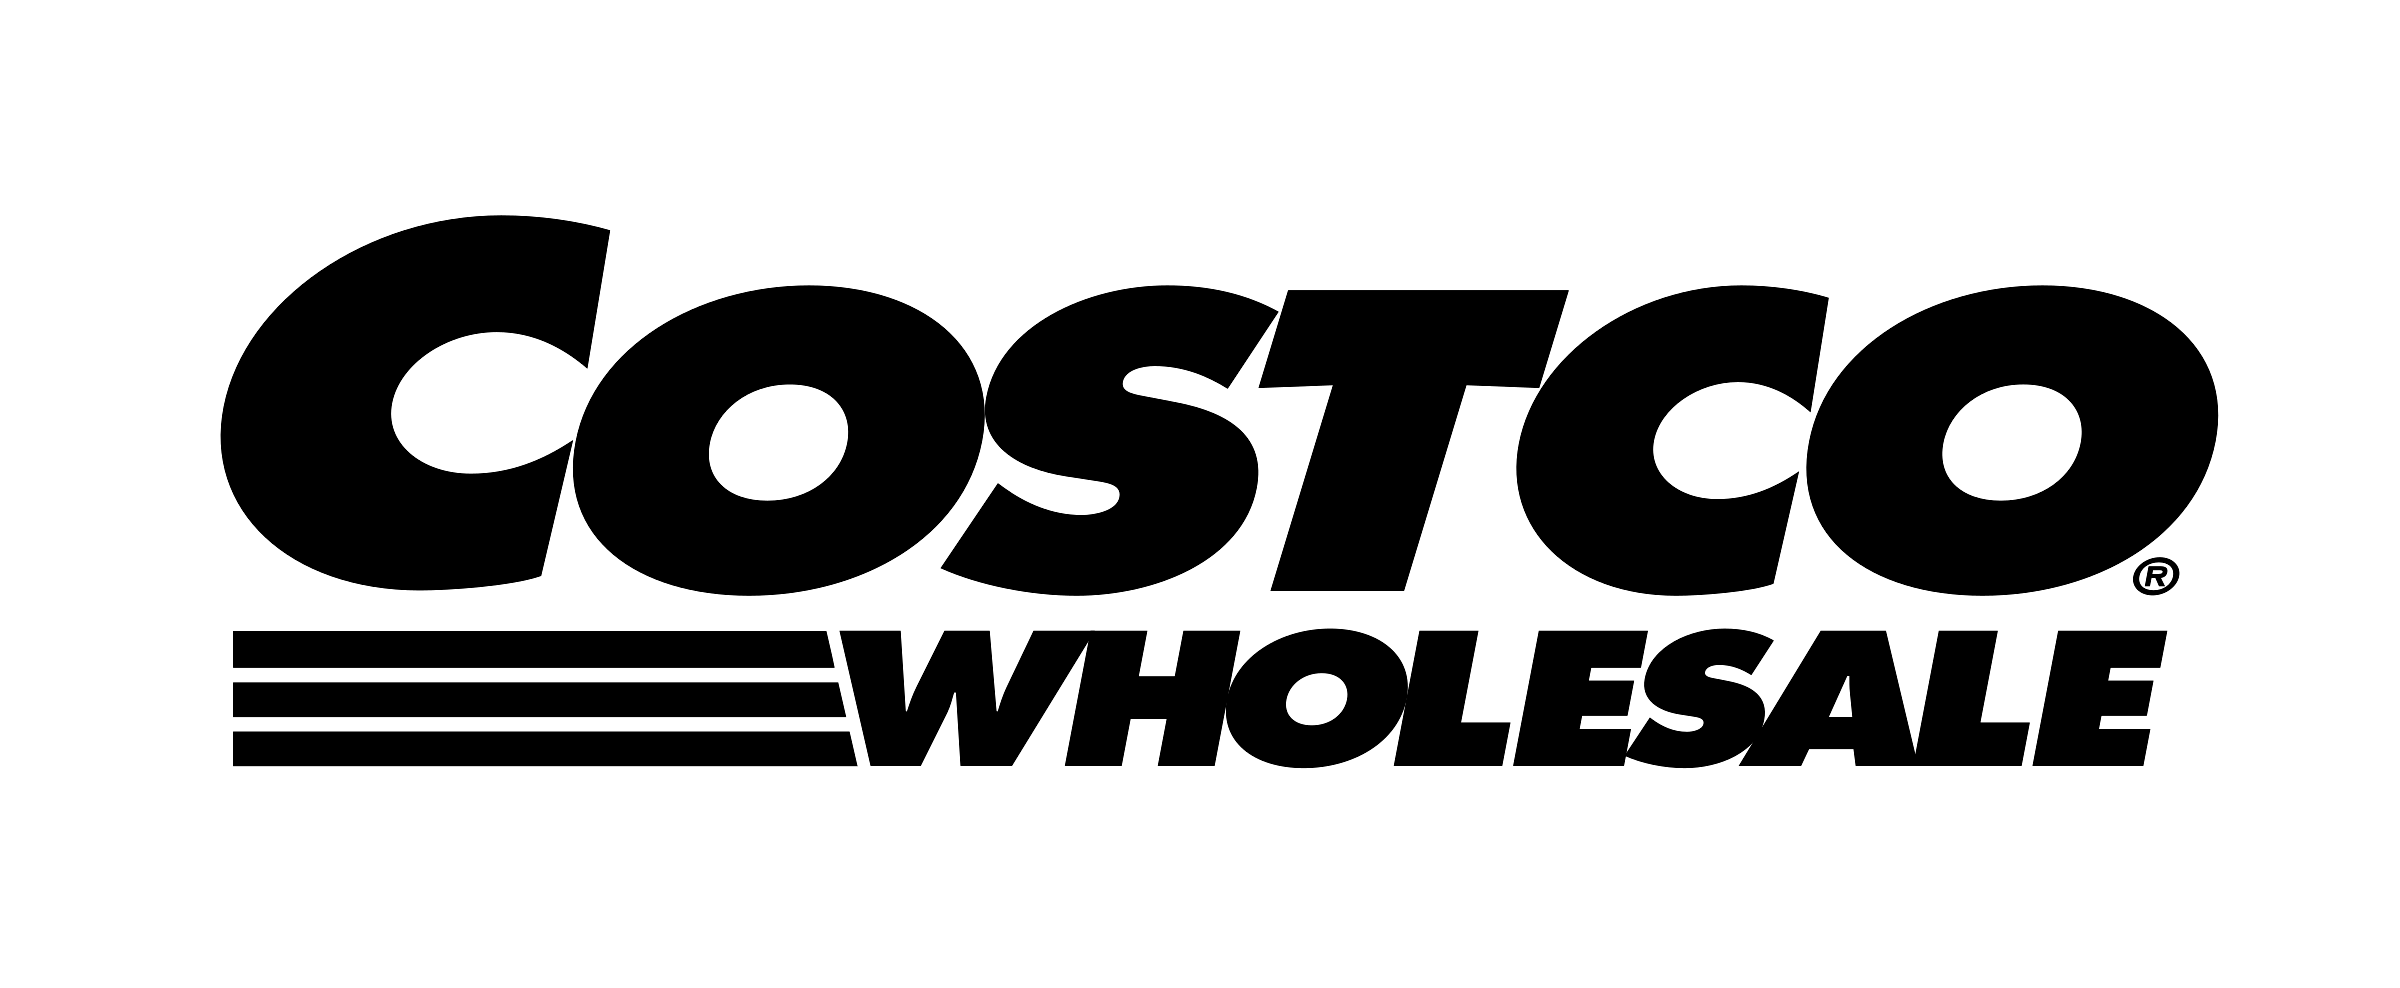 costco-logo-black-and-white.png